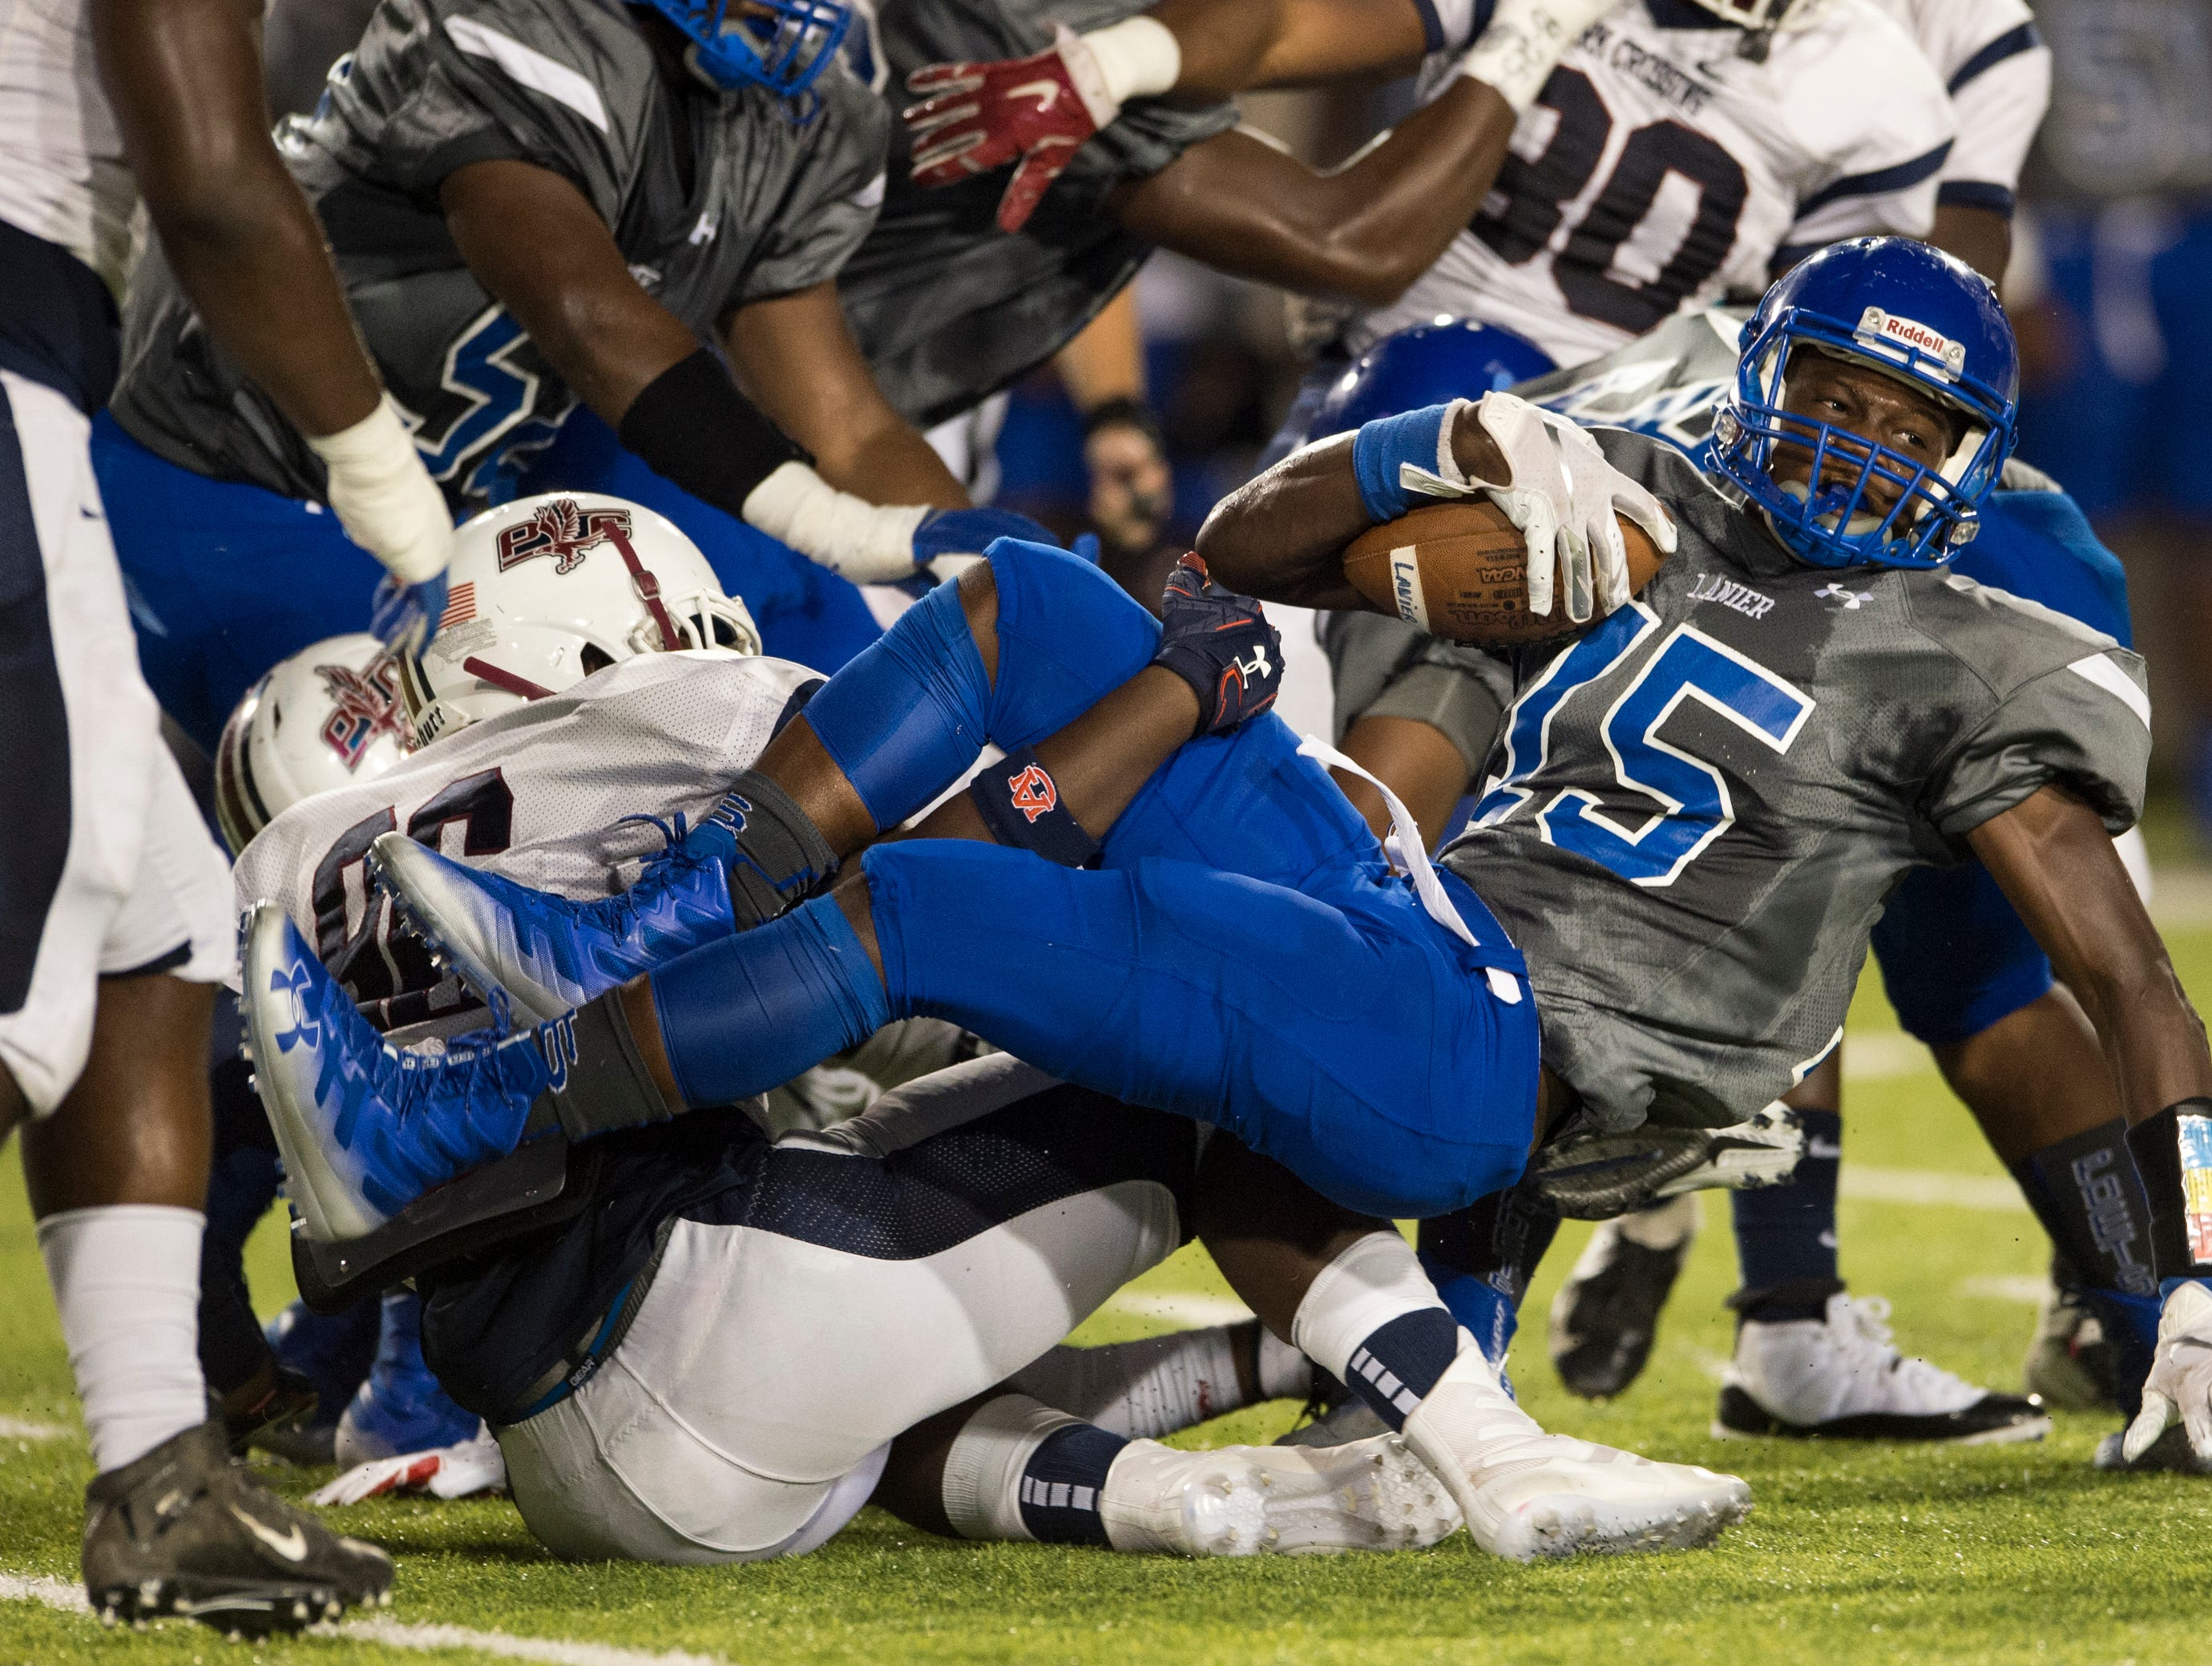 Lanier's Jacory Merritt (15) falls over defenders as he runs the ball at Cramton Bowl in Montgomery, Ala., on Friday, Sept. 21, 2018. Lanier leads Park Crossing 14-7 at halftime.